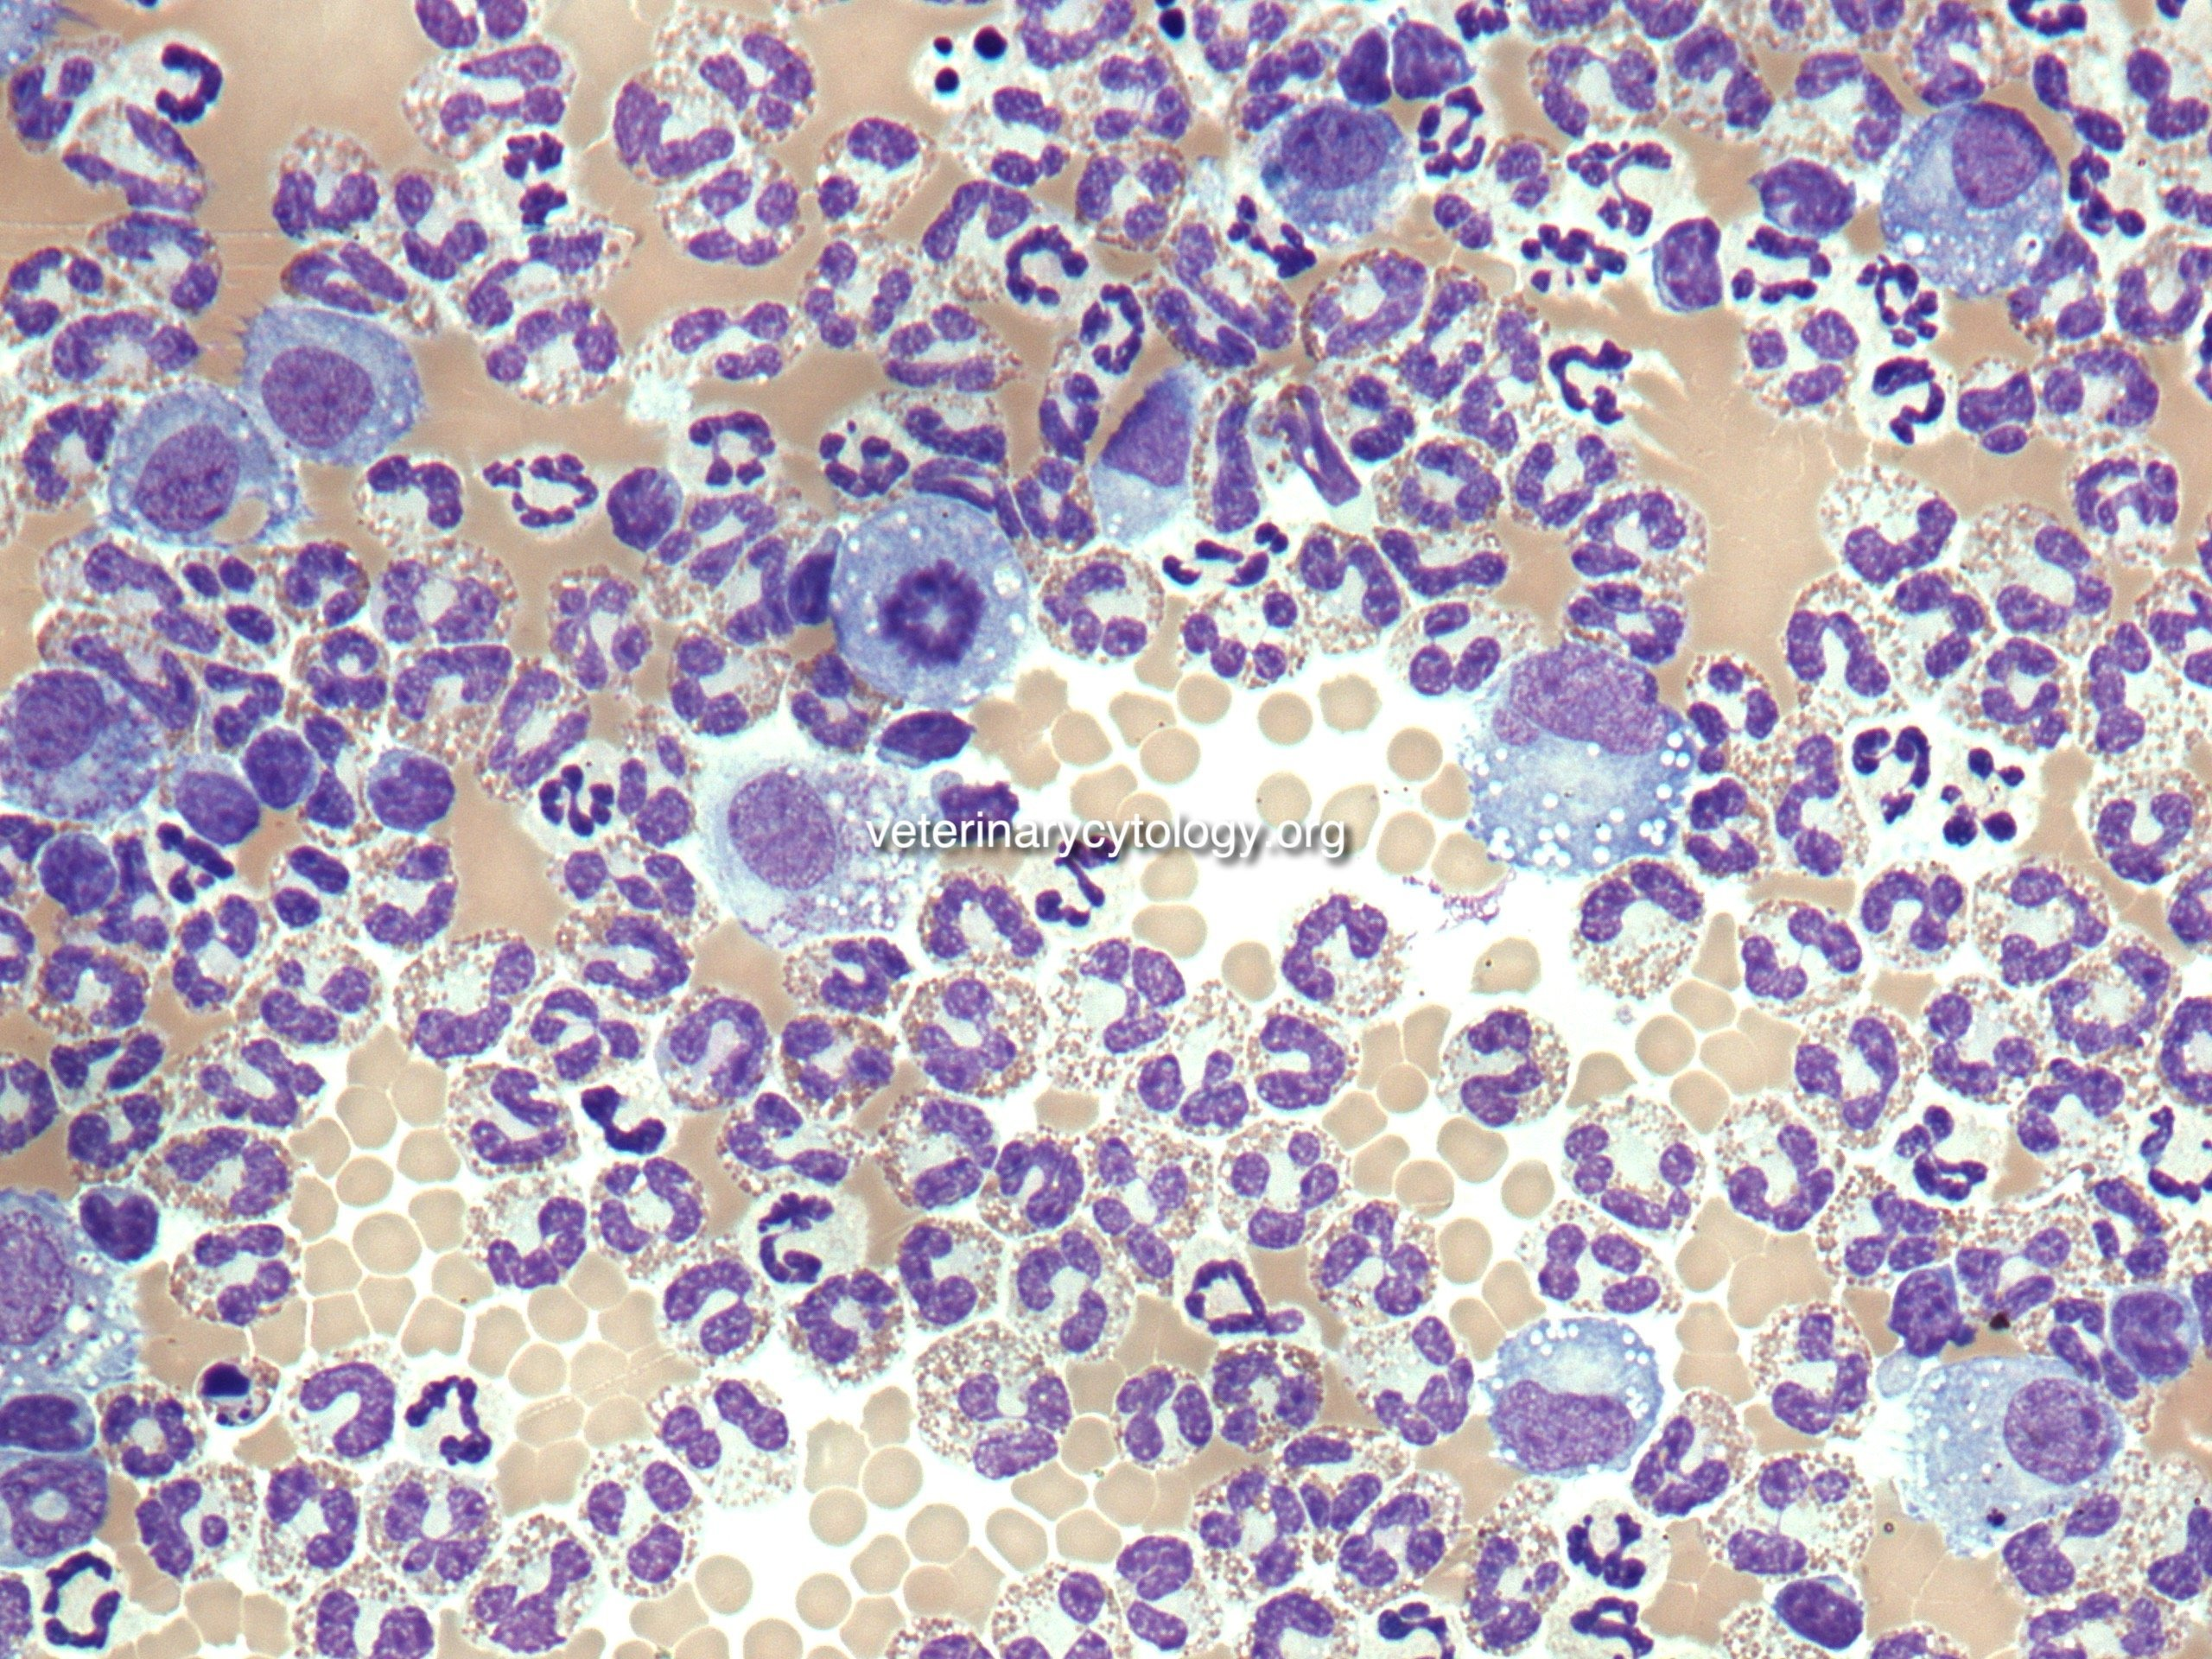 Eosinophilic effusion, abdominal fluid, dog.